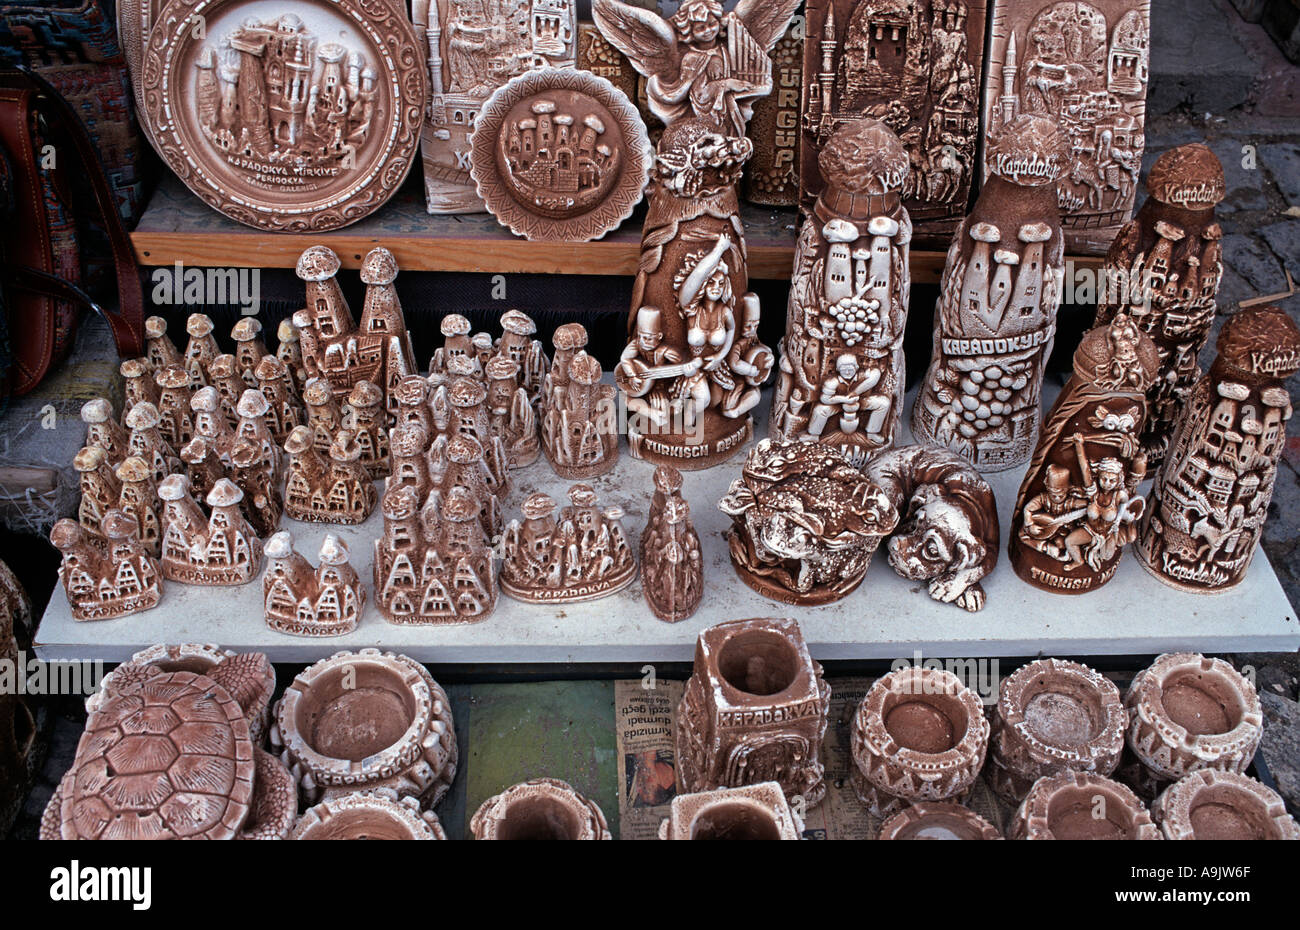 Selection of souvenirs made of plaster for sale in souvenir markets in the Zelve and Goreme valleys Cappadocia Turkey - Stock Image